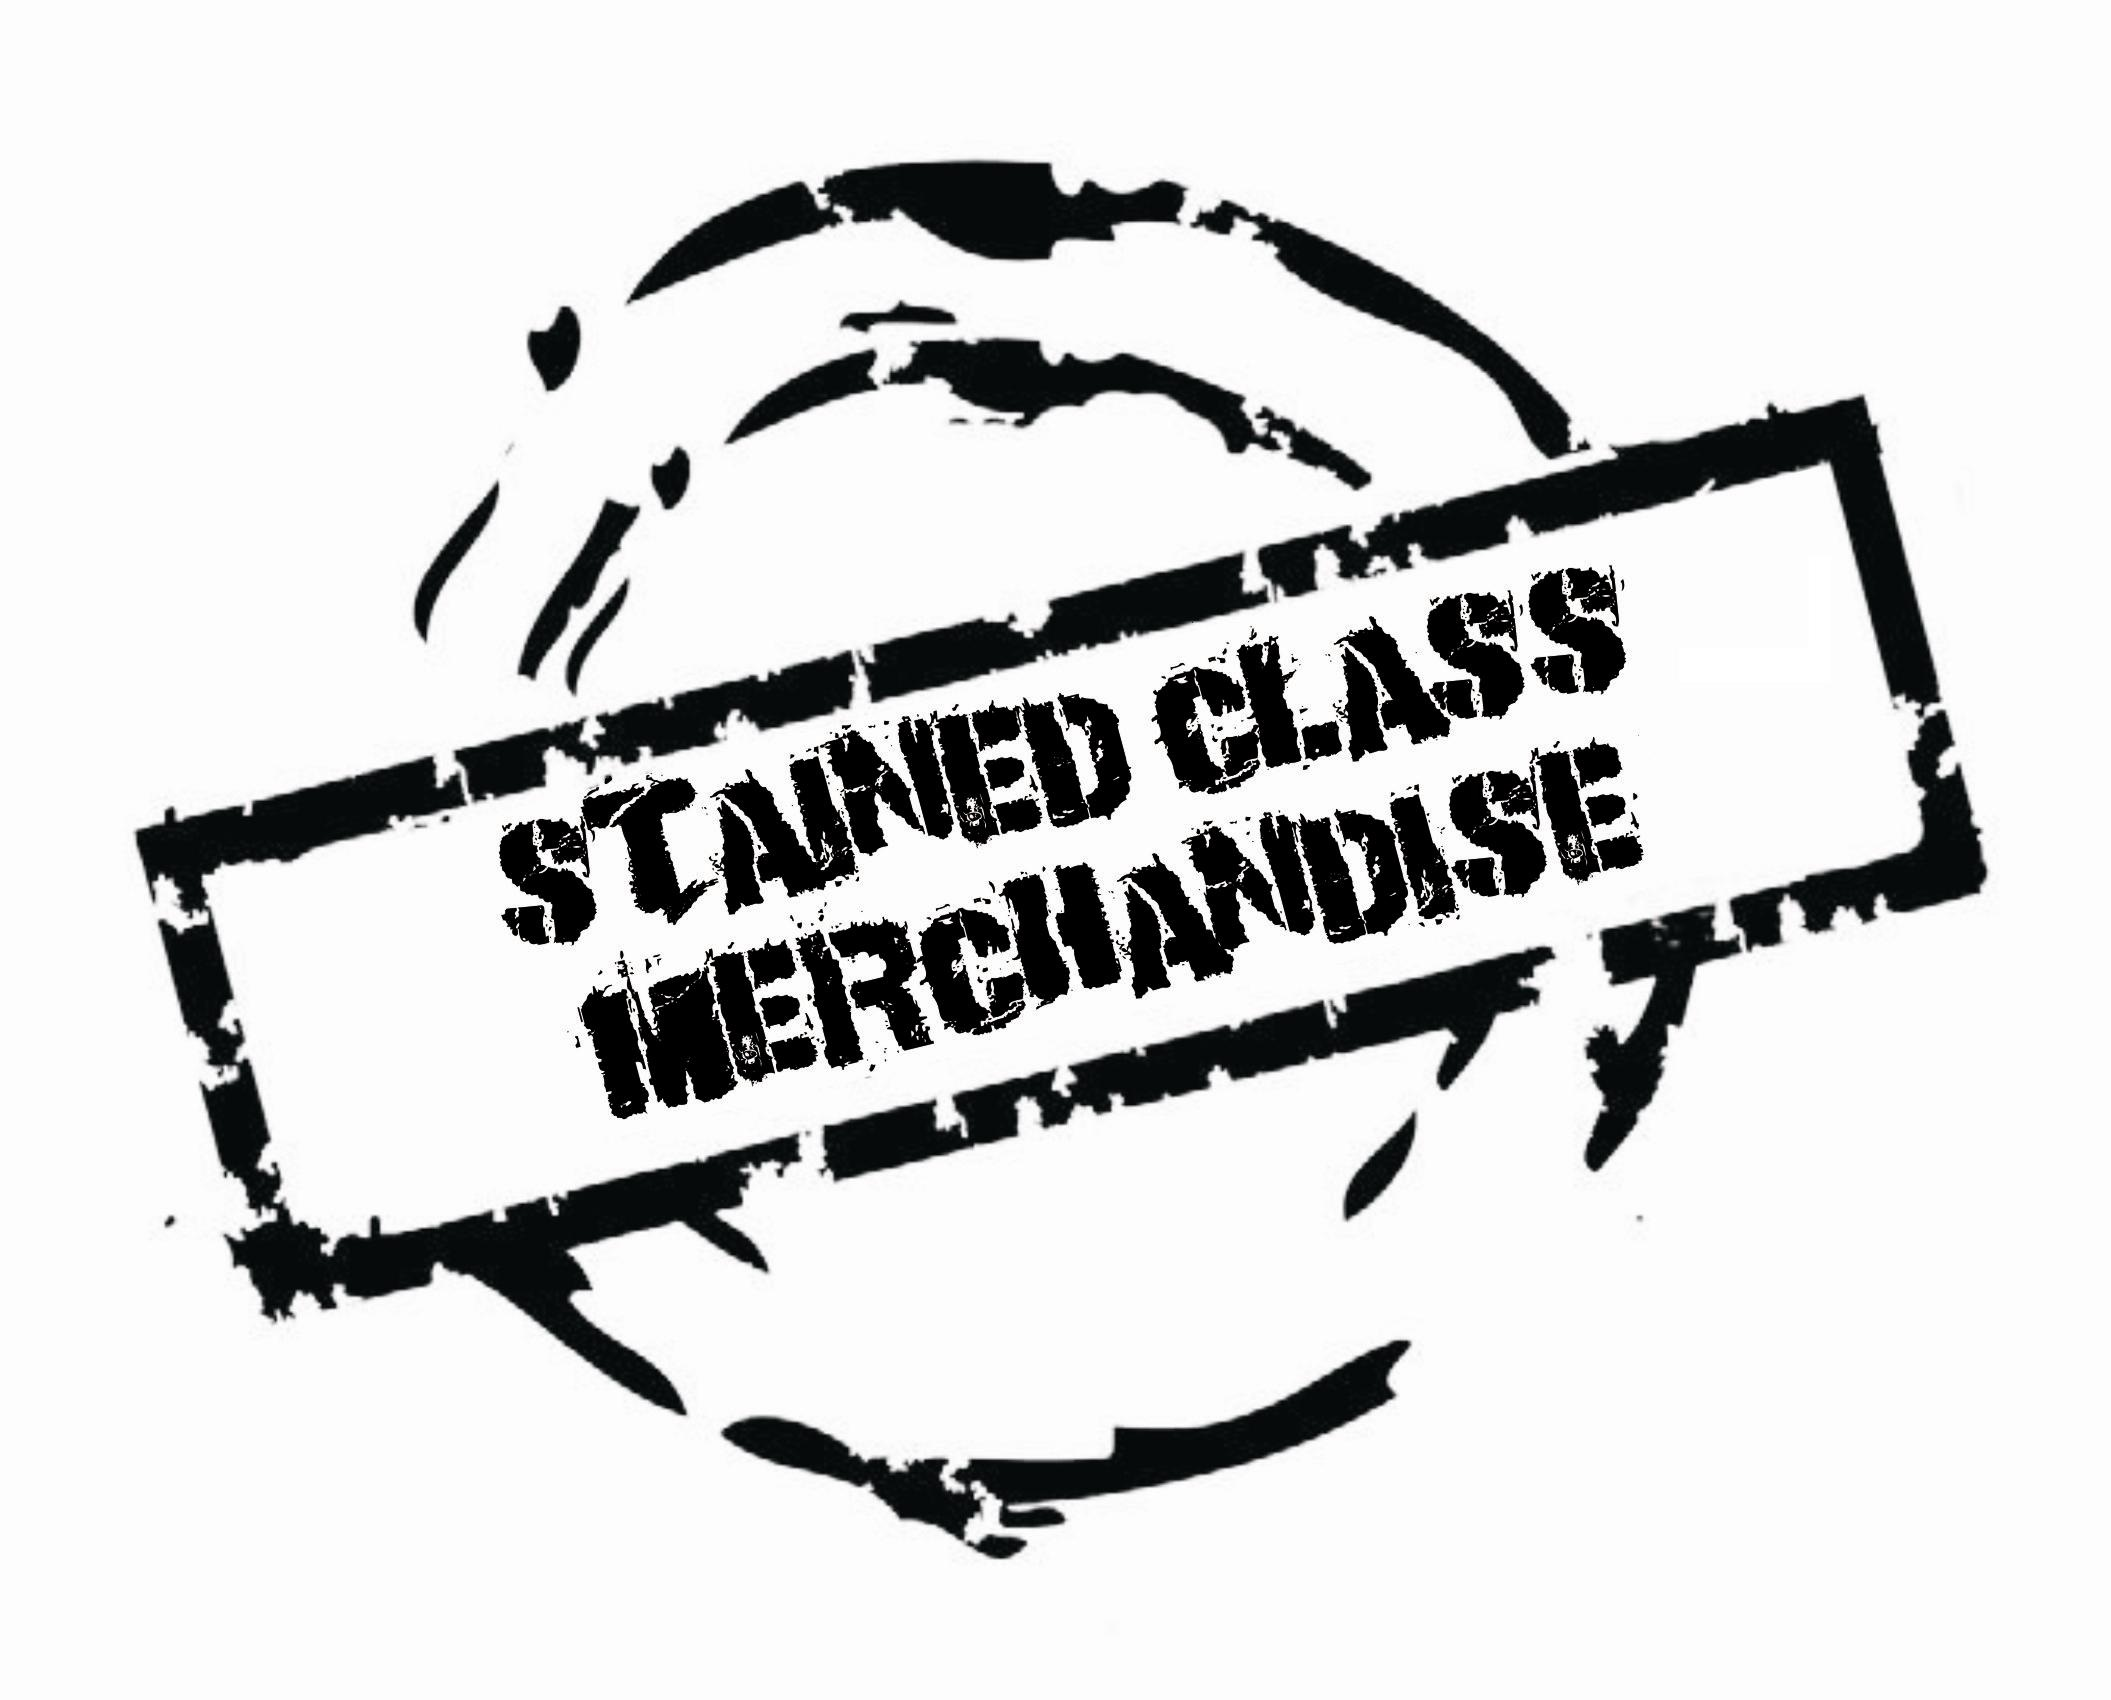 Stained Class Merchandise